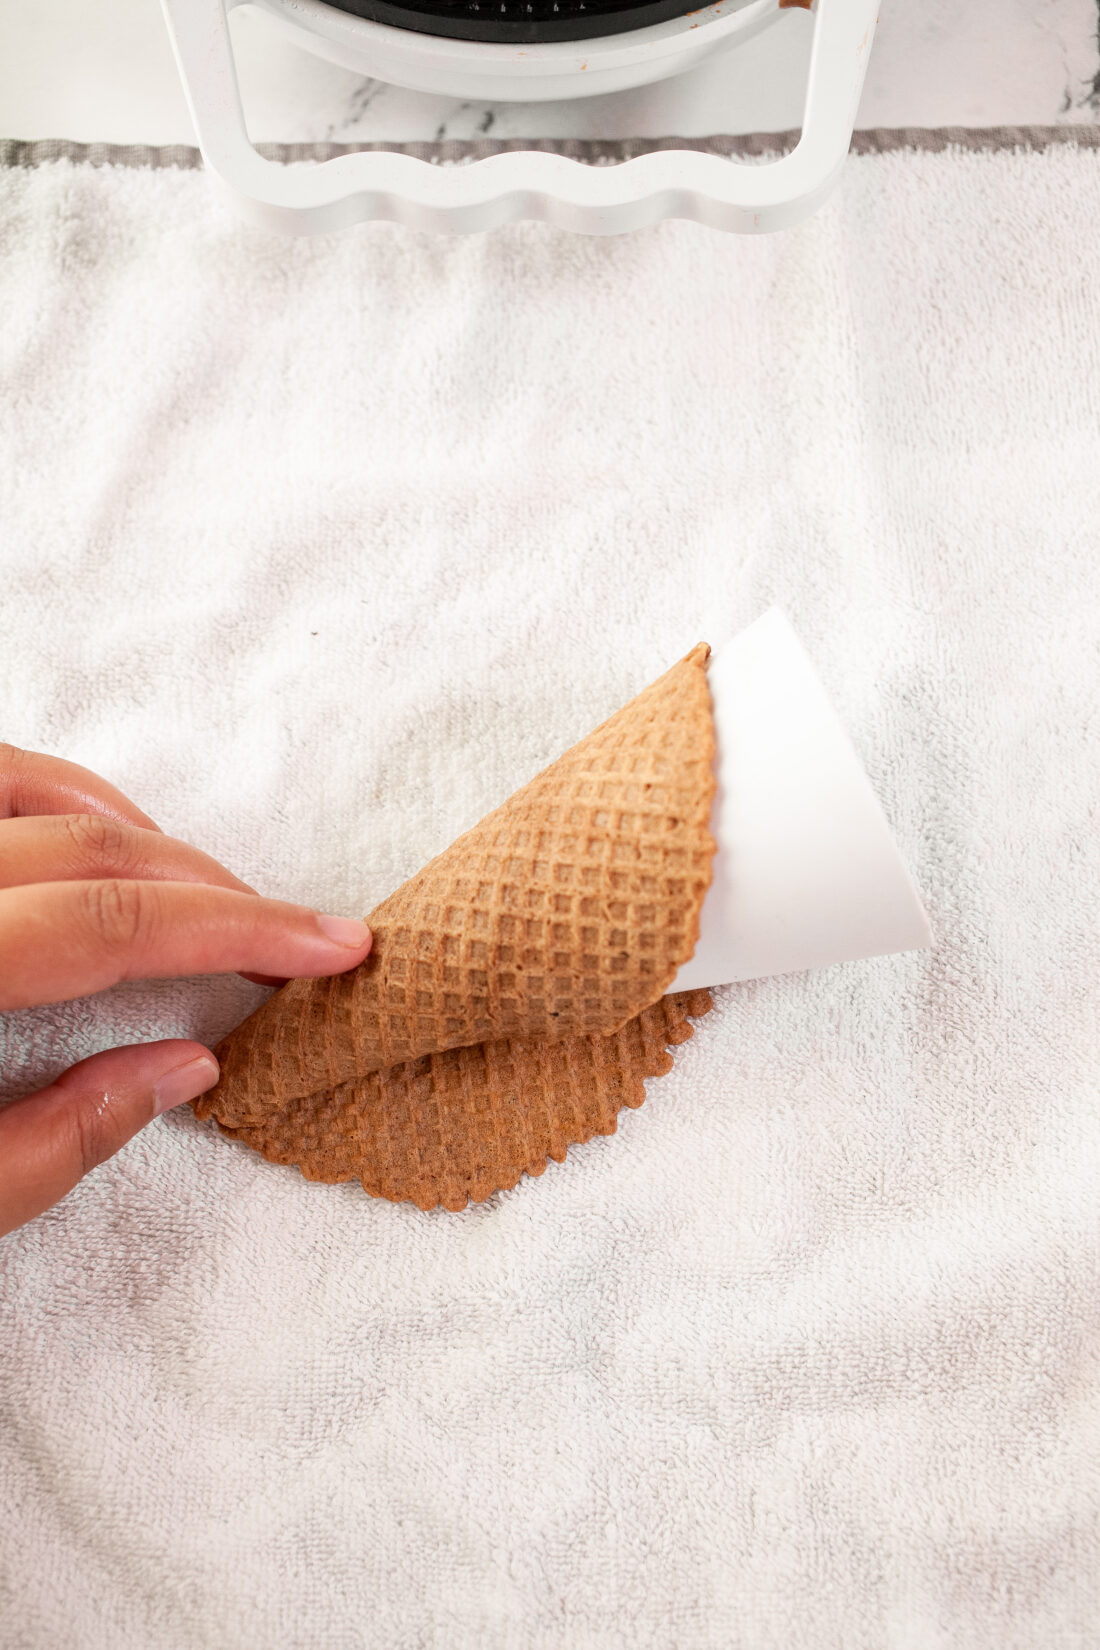 These Homemade Waffle Cones are quick and easy to make. Learn how to make waffle cones using a waffle iron, it's a simple recipe that you can top and fill with your favorite ice cream.